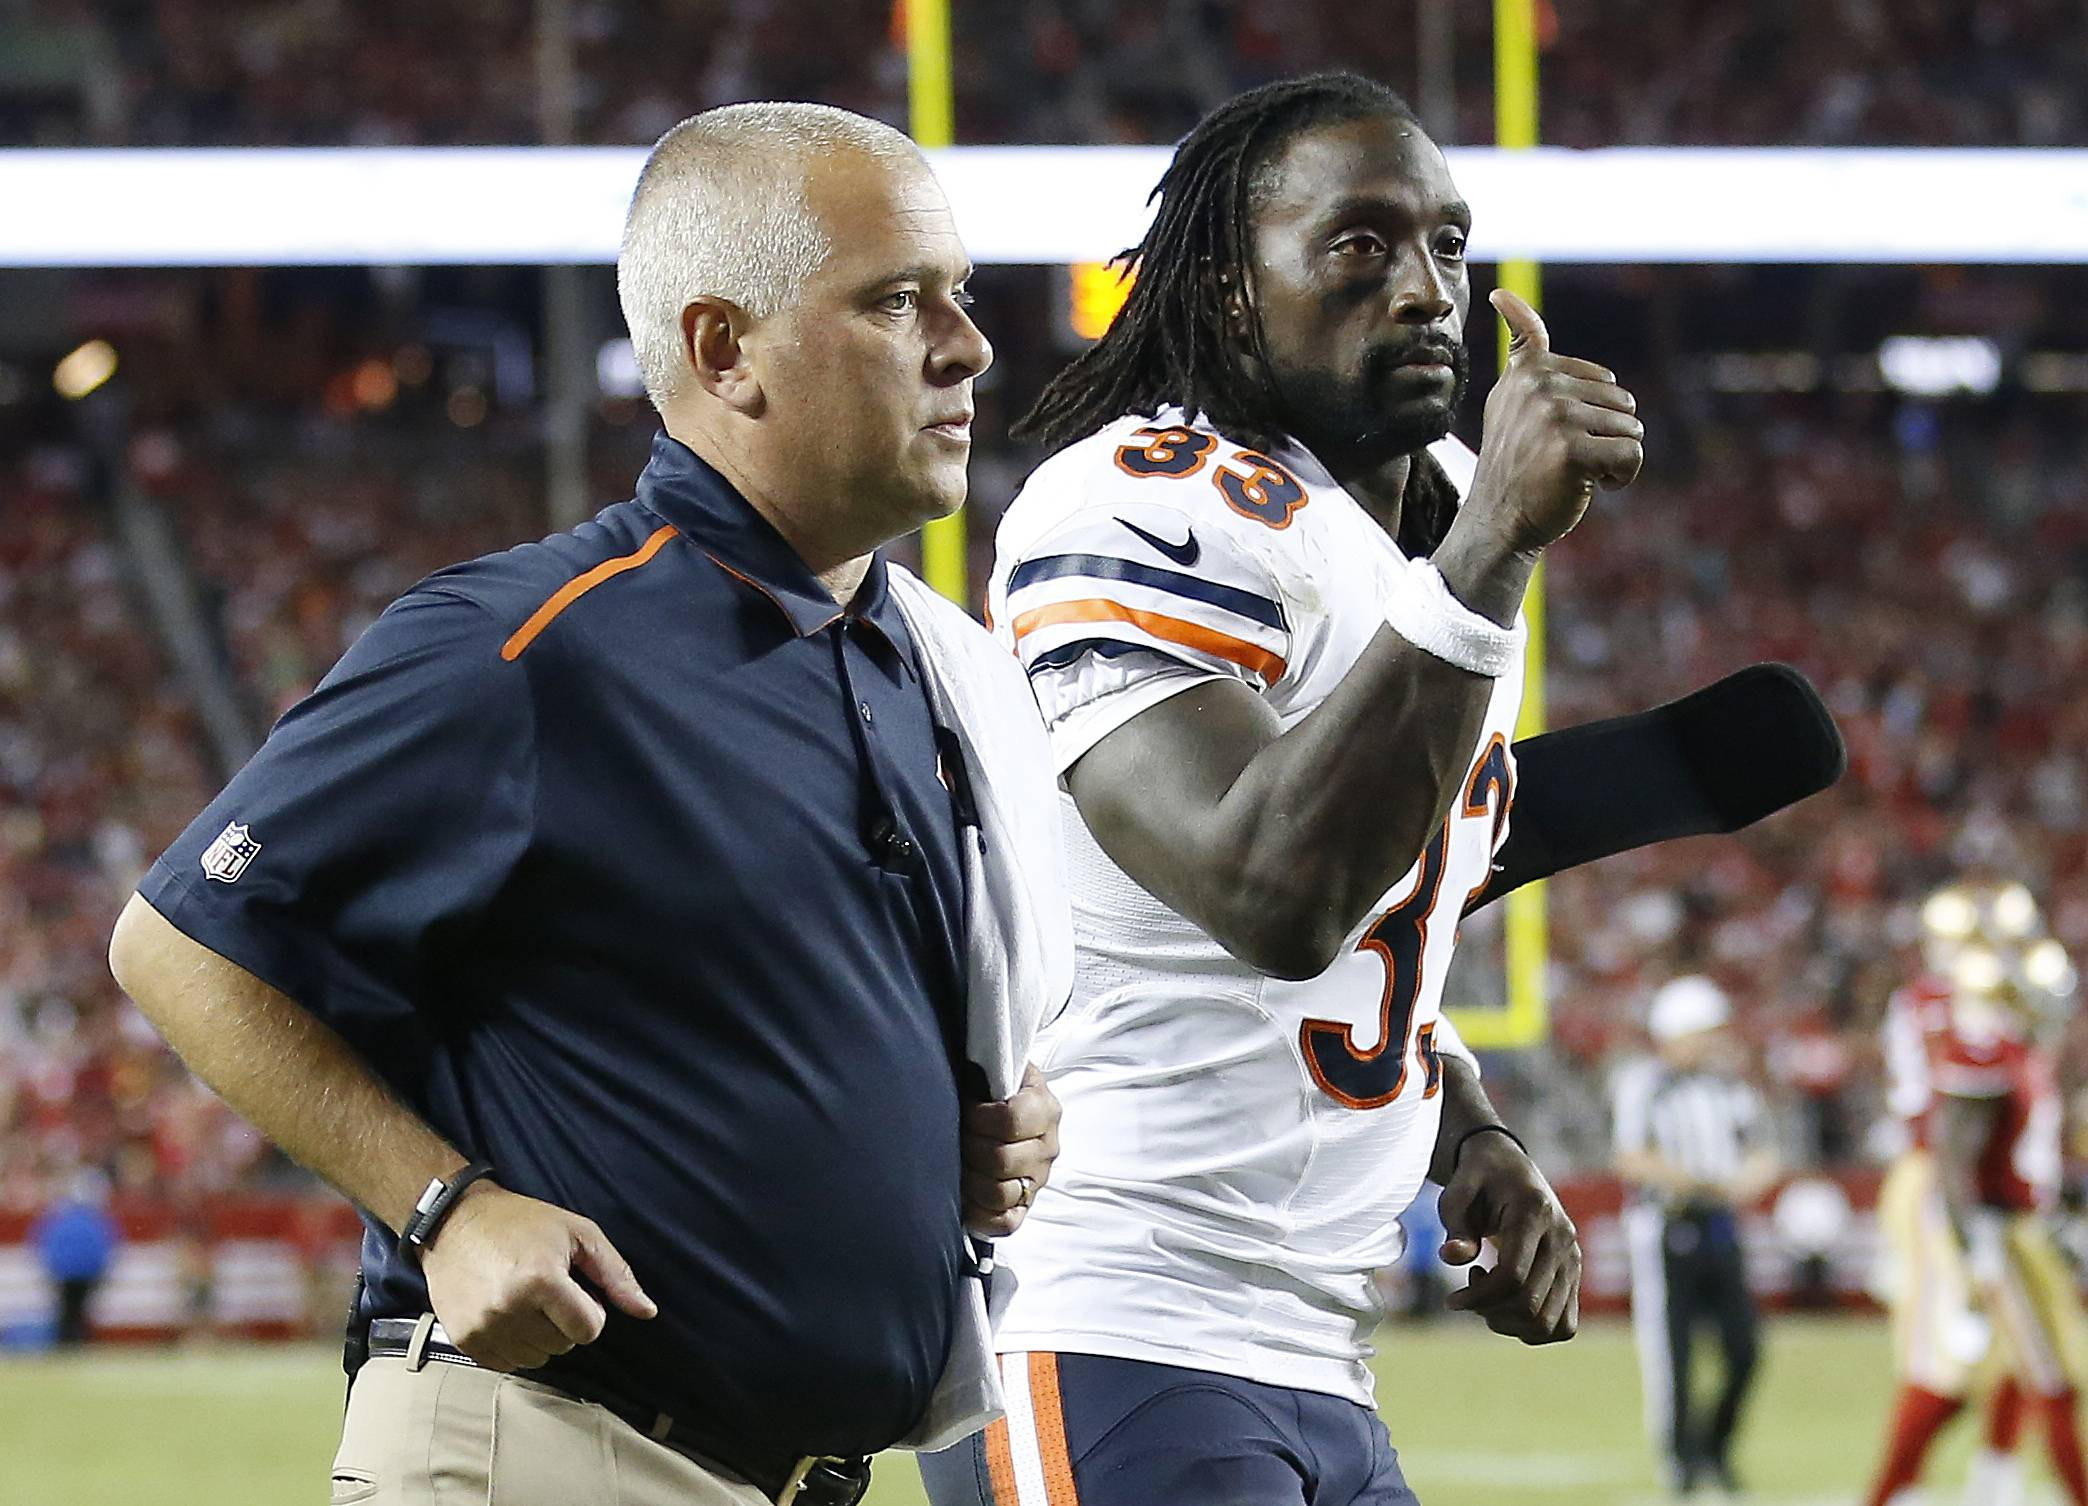 Bears cornerback Charles Tillman gives a thumbs-up as he leaves the field after being injured during the second half Sunday night. Tillman was put on injured reserve Monday with a ruptured triceps.